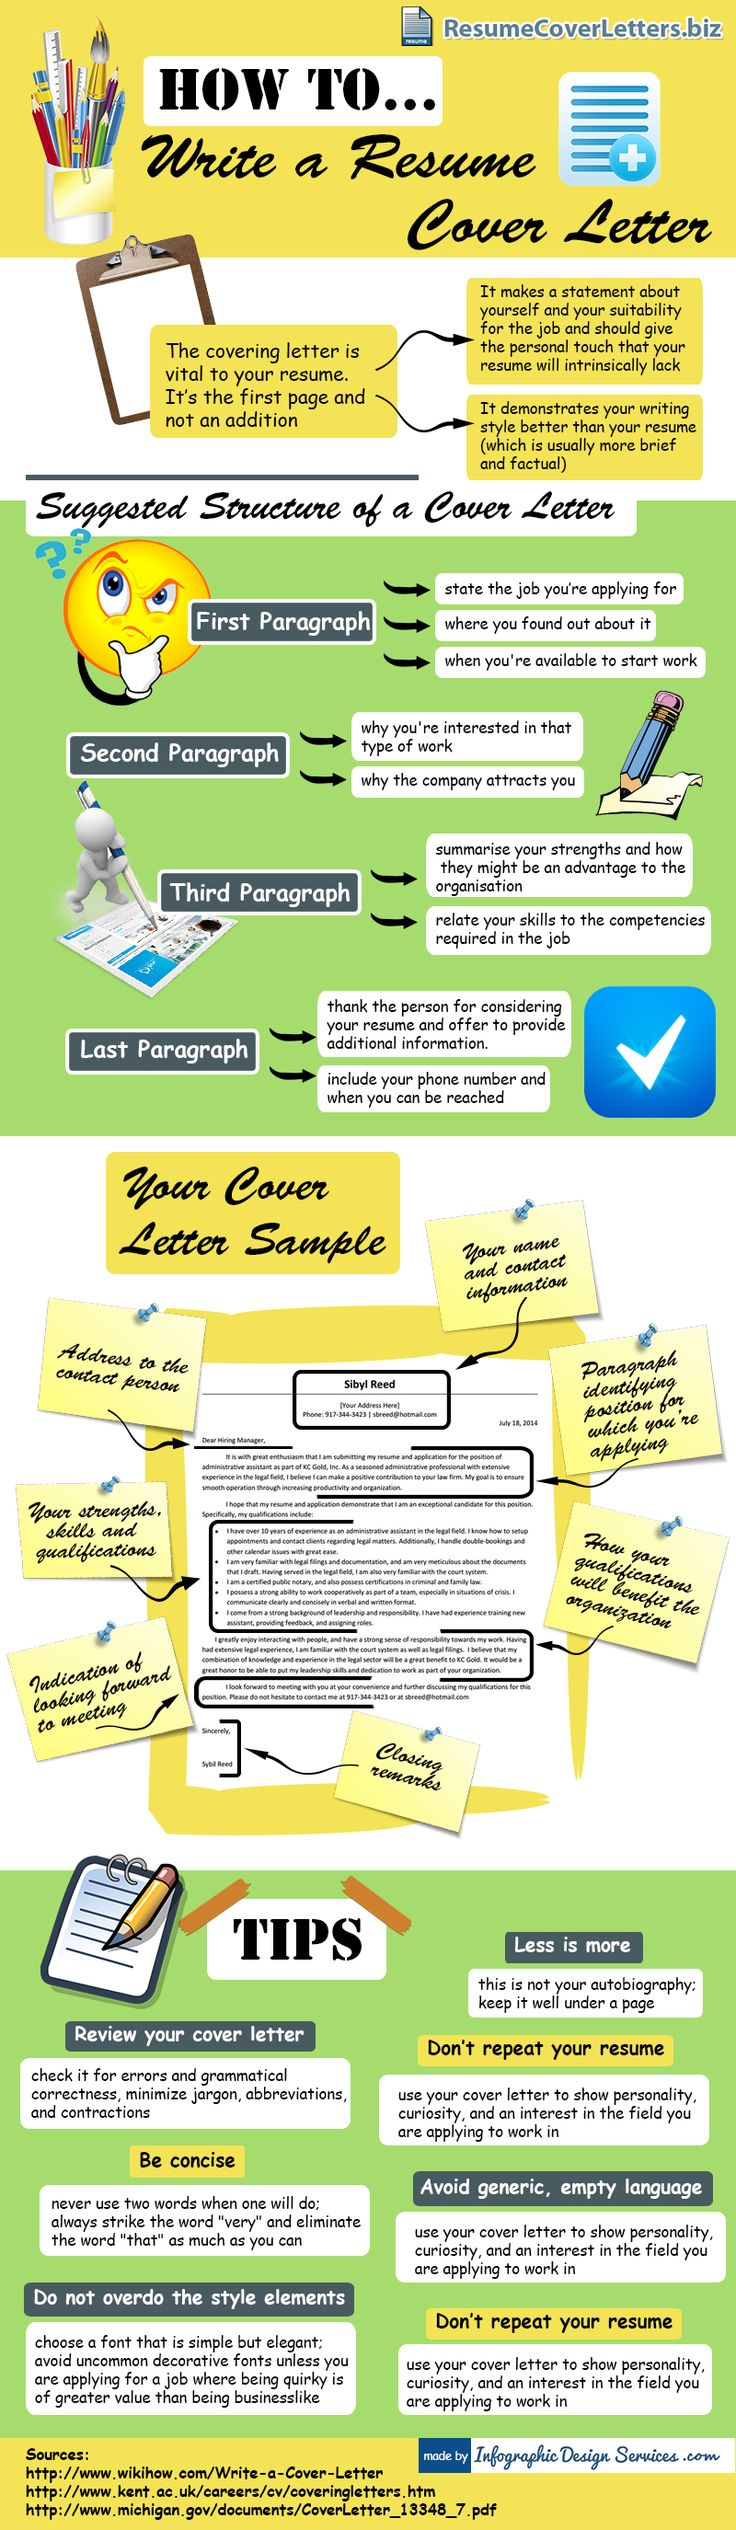 cover letter guide Address each letter to a specific individual call the company, check spelling of the contact name and get his/her current job title place emphasis on skills needed/requested for each particular job opportunity.